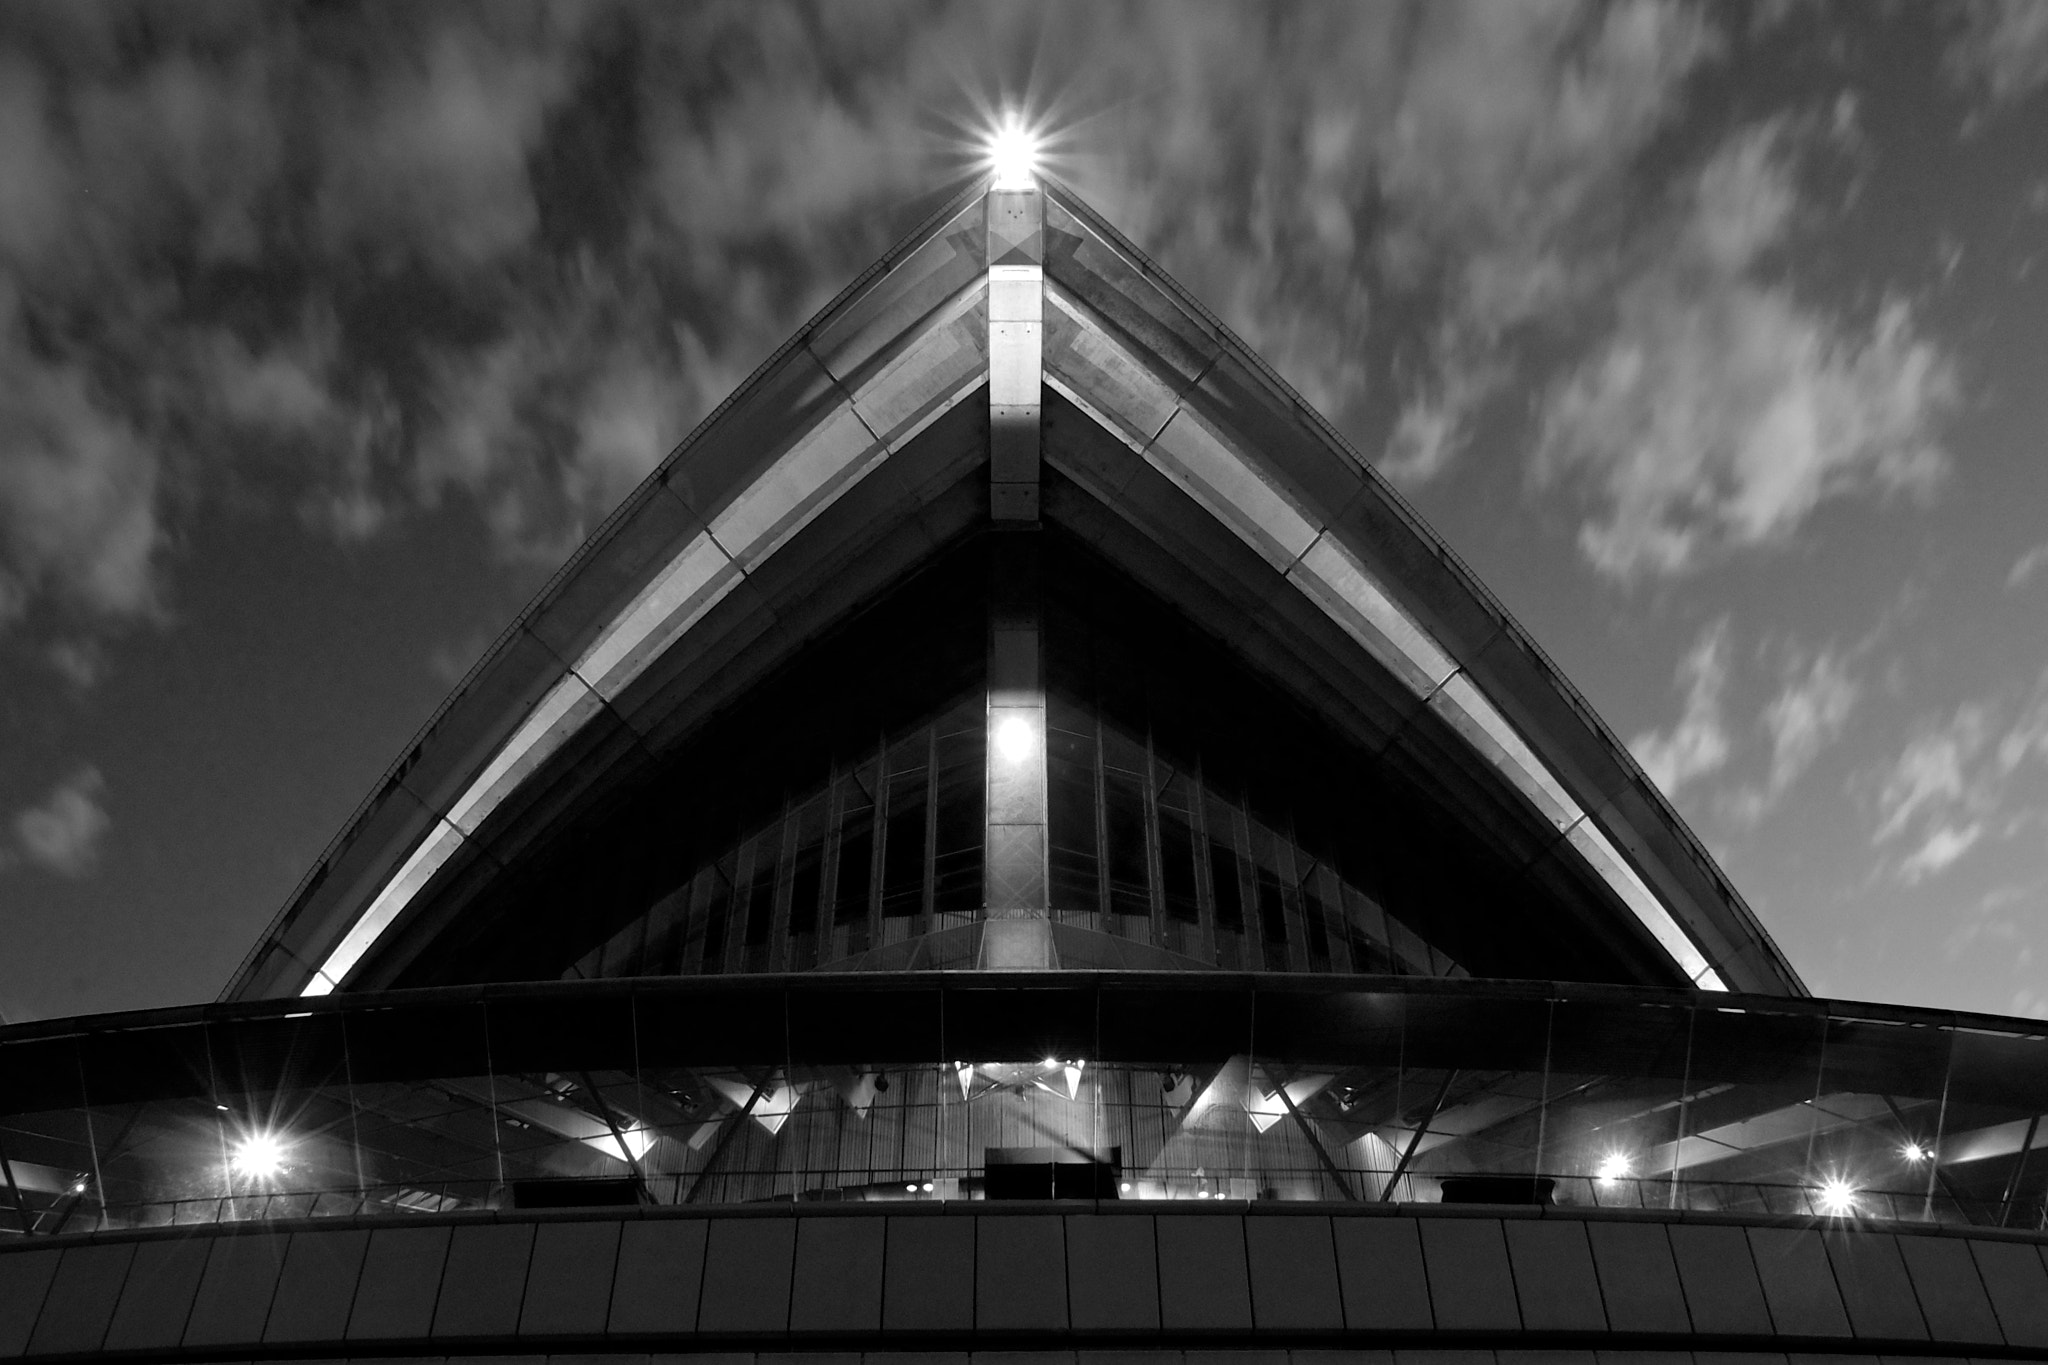 Photograph Sydney Opera House by Christian Reimers on 500px